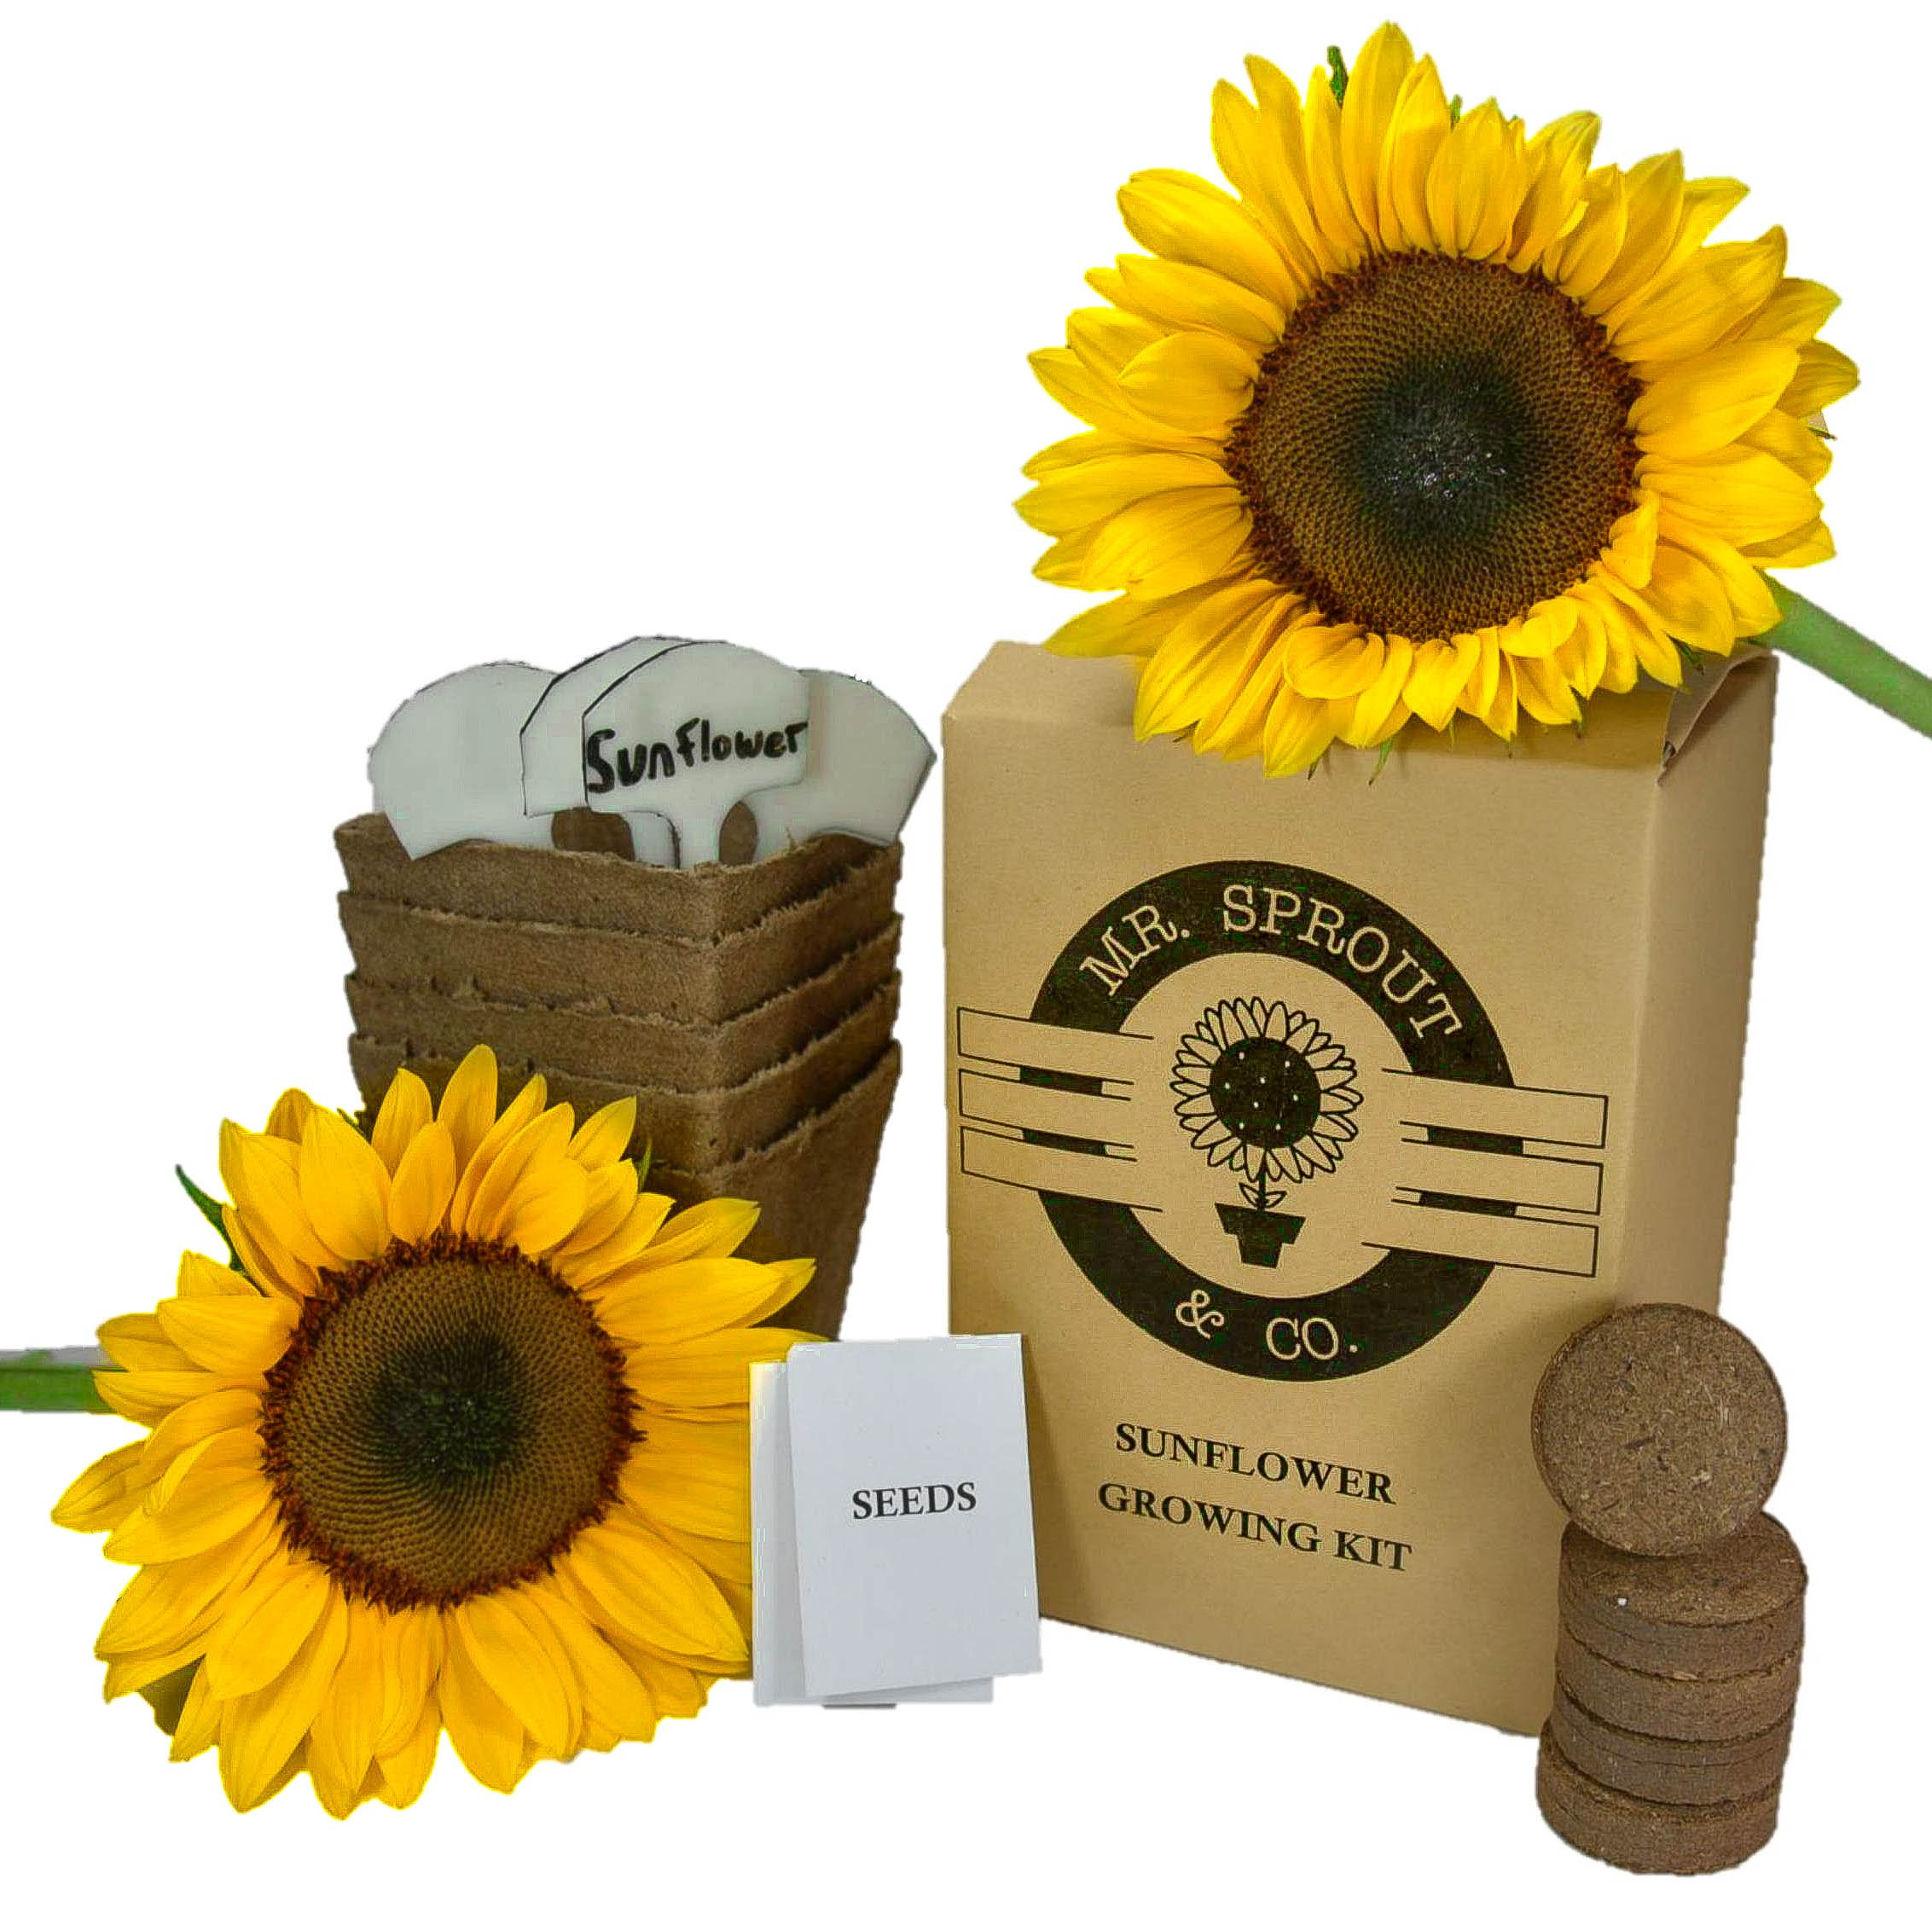 Mr. Sprout Organic Sunflower Starter Kit - Plant Growing Kit for Kids, Adults Or Gift Idea - Flower Seed Starter Kit Includes Peat Pots, Nutrient Rich Soil Pellets, and Plant Tags